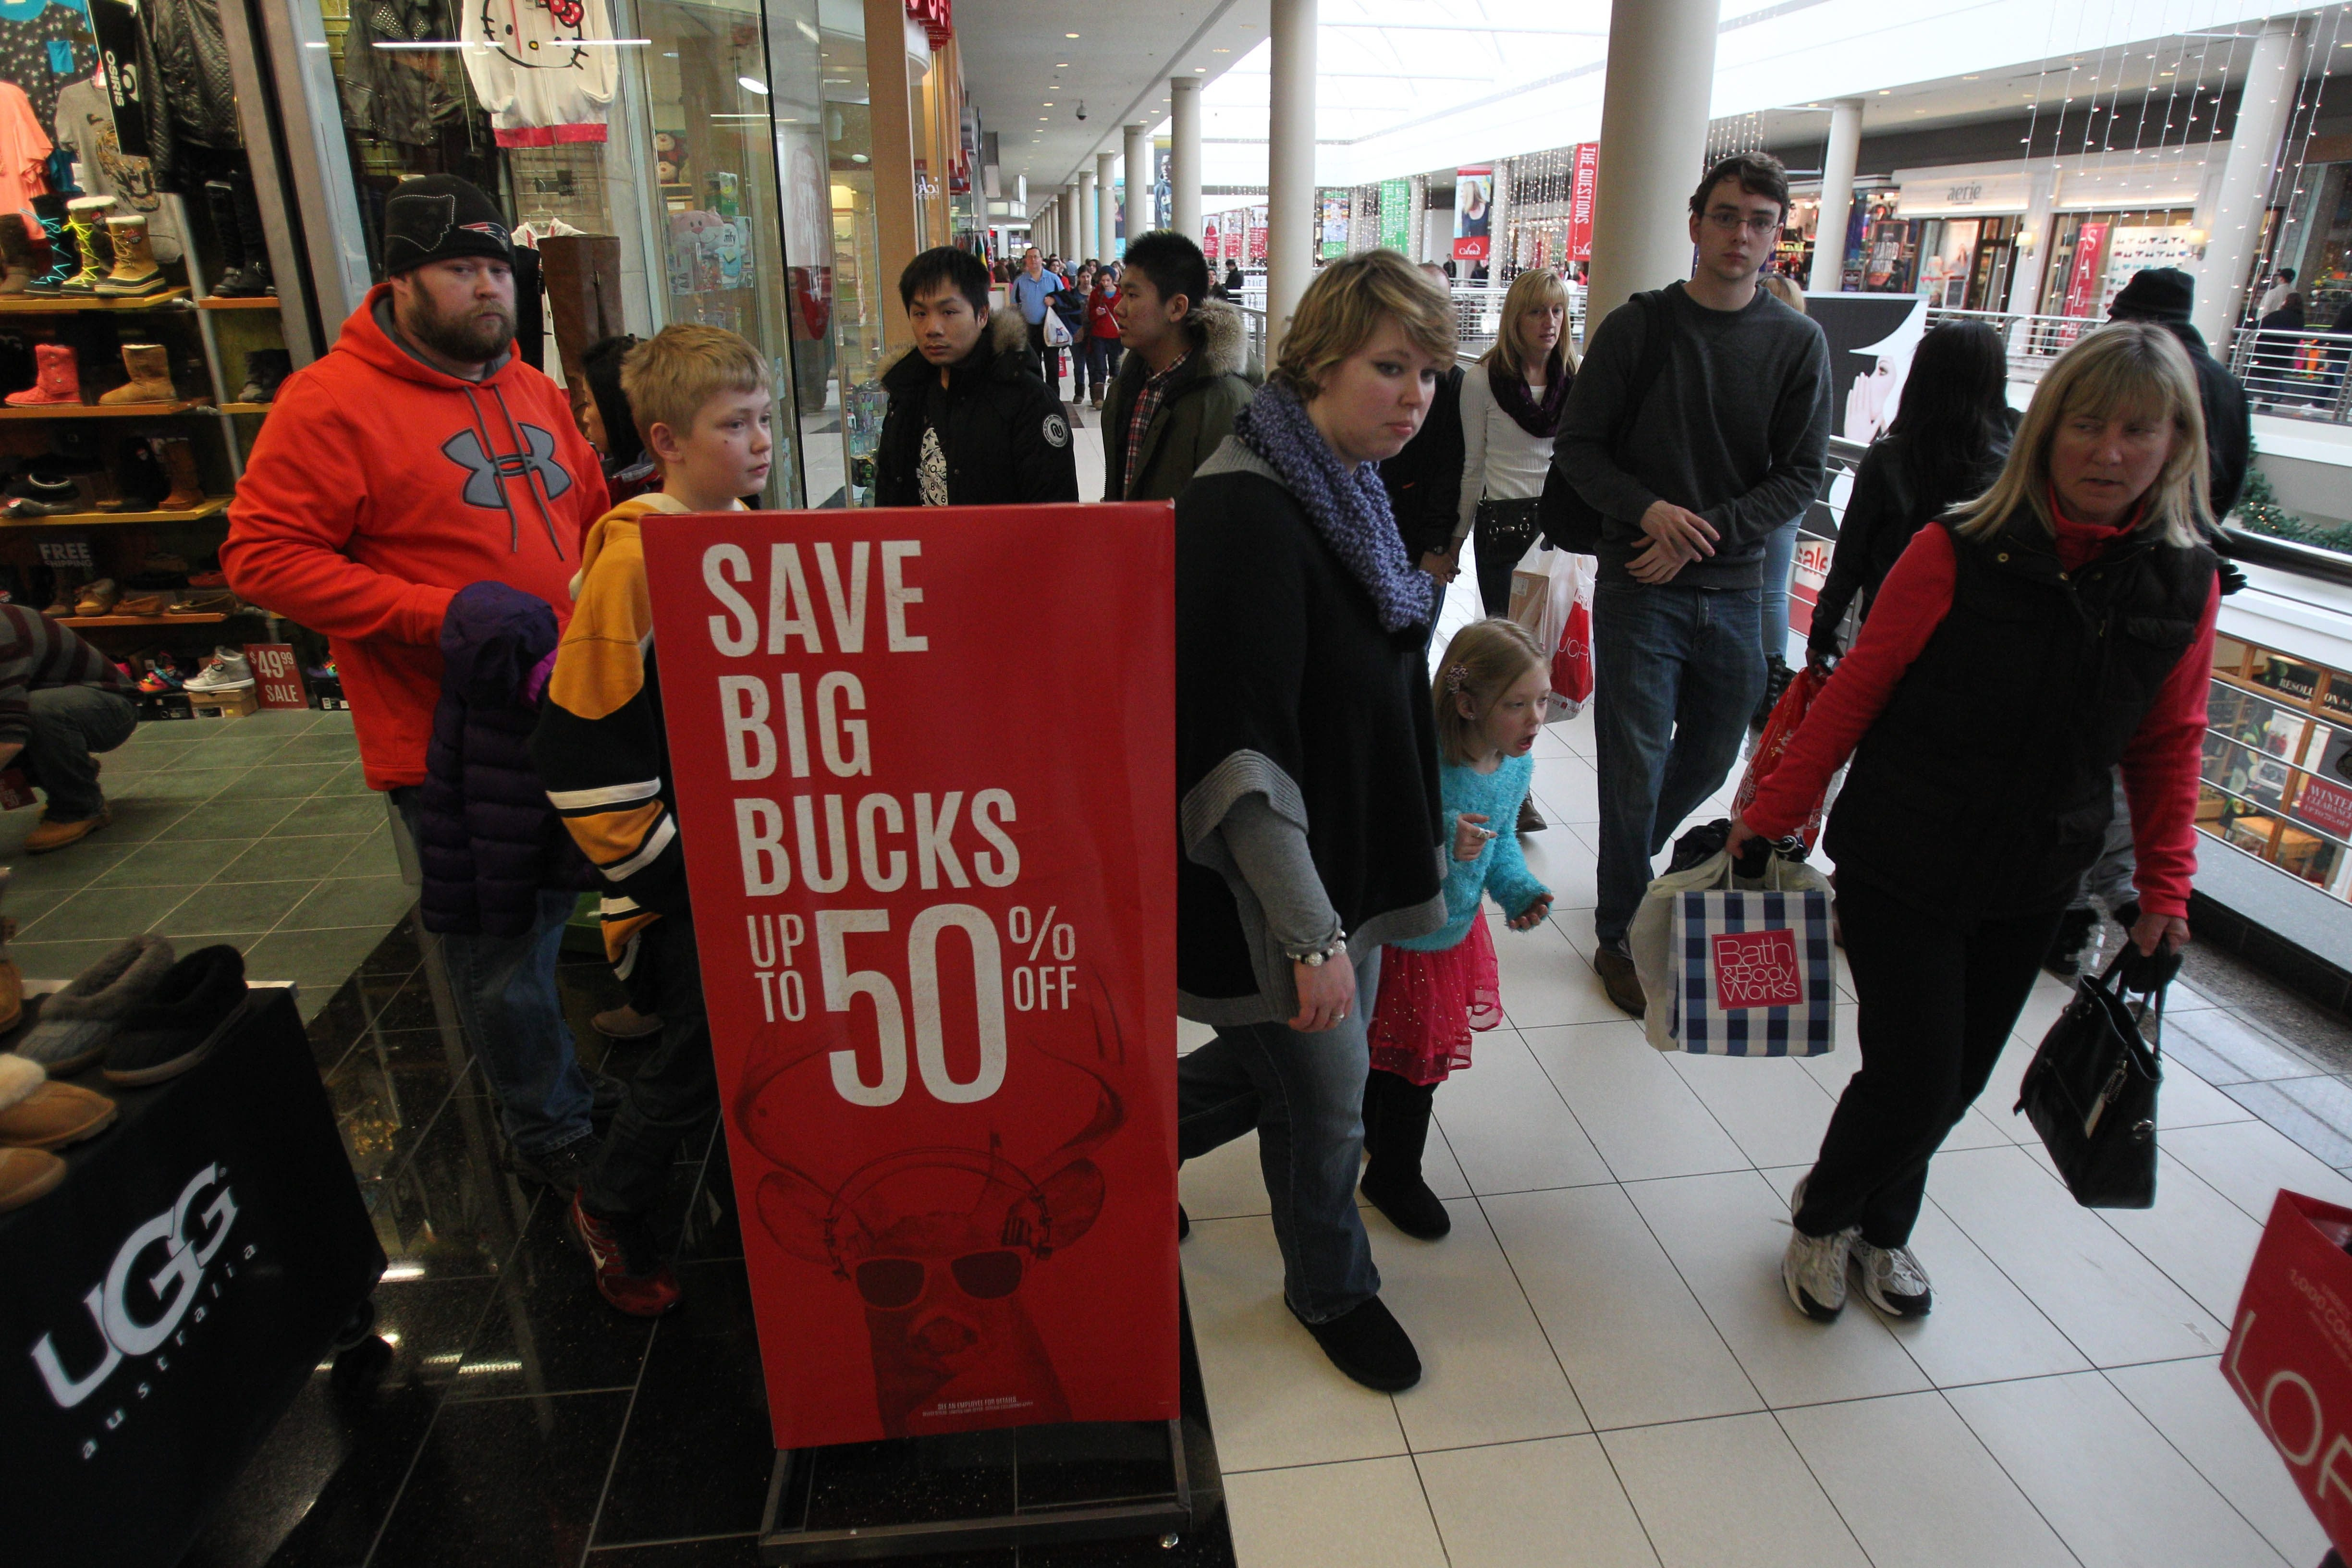 Day after Christmas provides lots of chances for shoppers to find bargains at Walden Galleria and elsewhere.